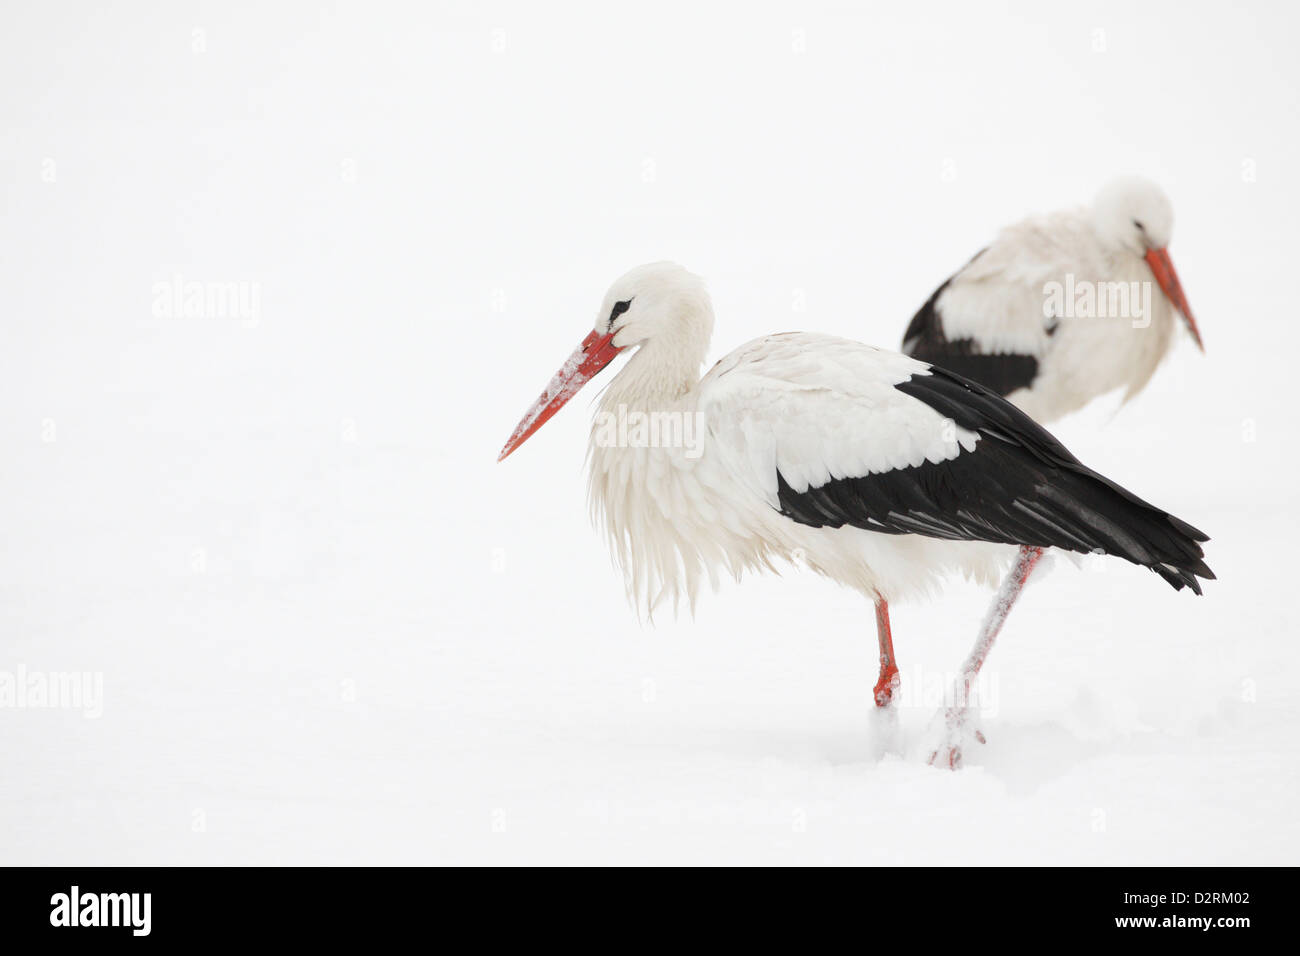 White Storks (Ciconia Ciconia) in the snow, The Hague, Netherlands - Stock Image